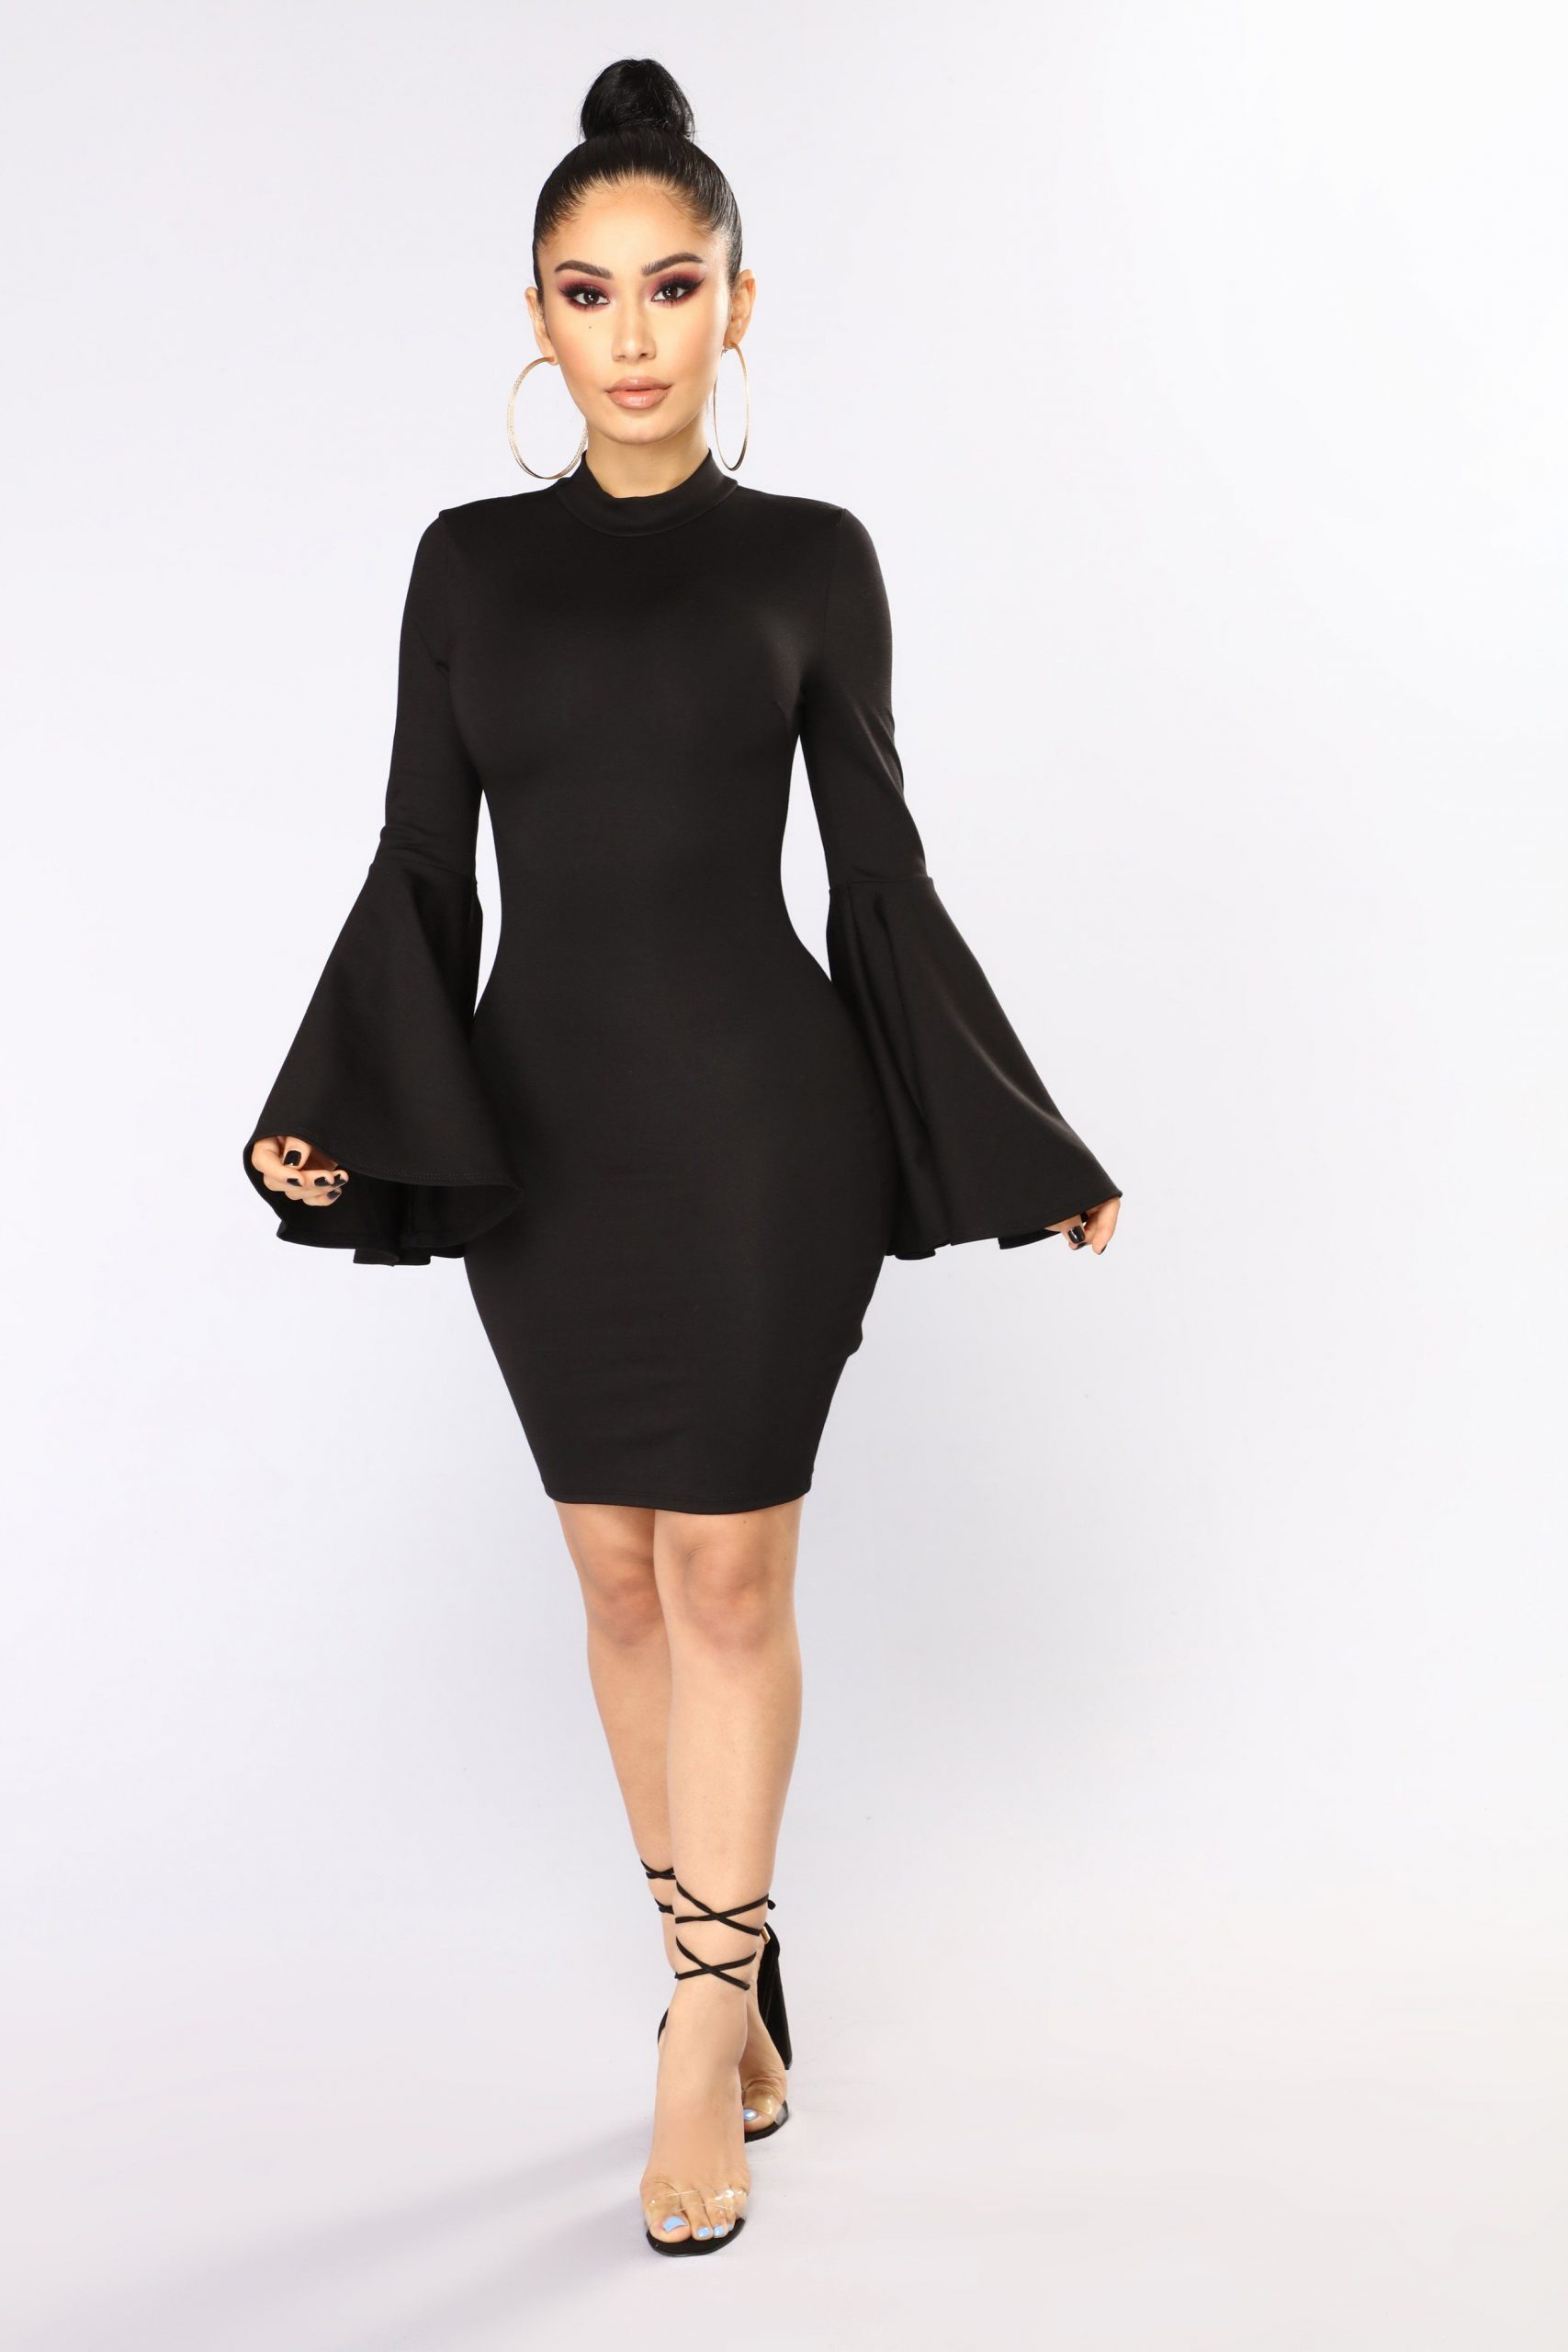 Black Bell Sleeve Dress Outfits